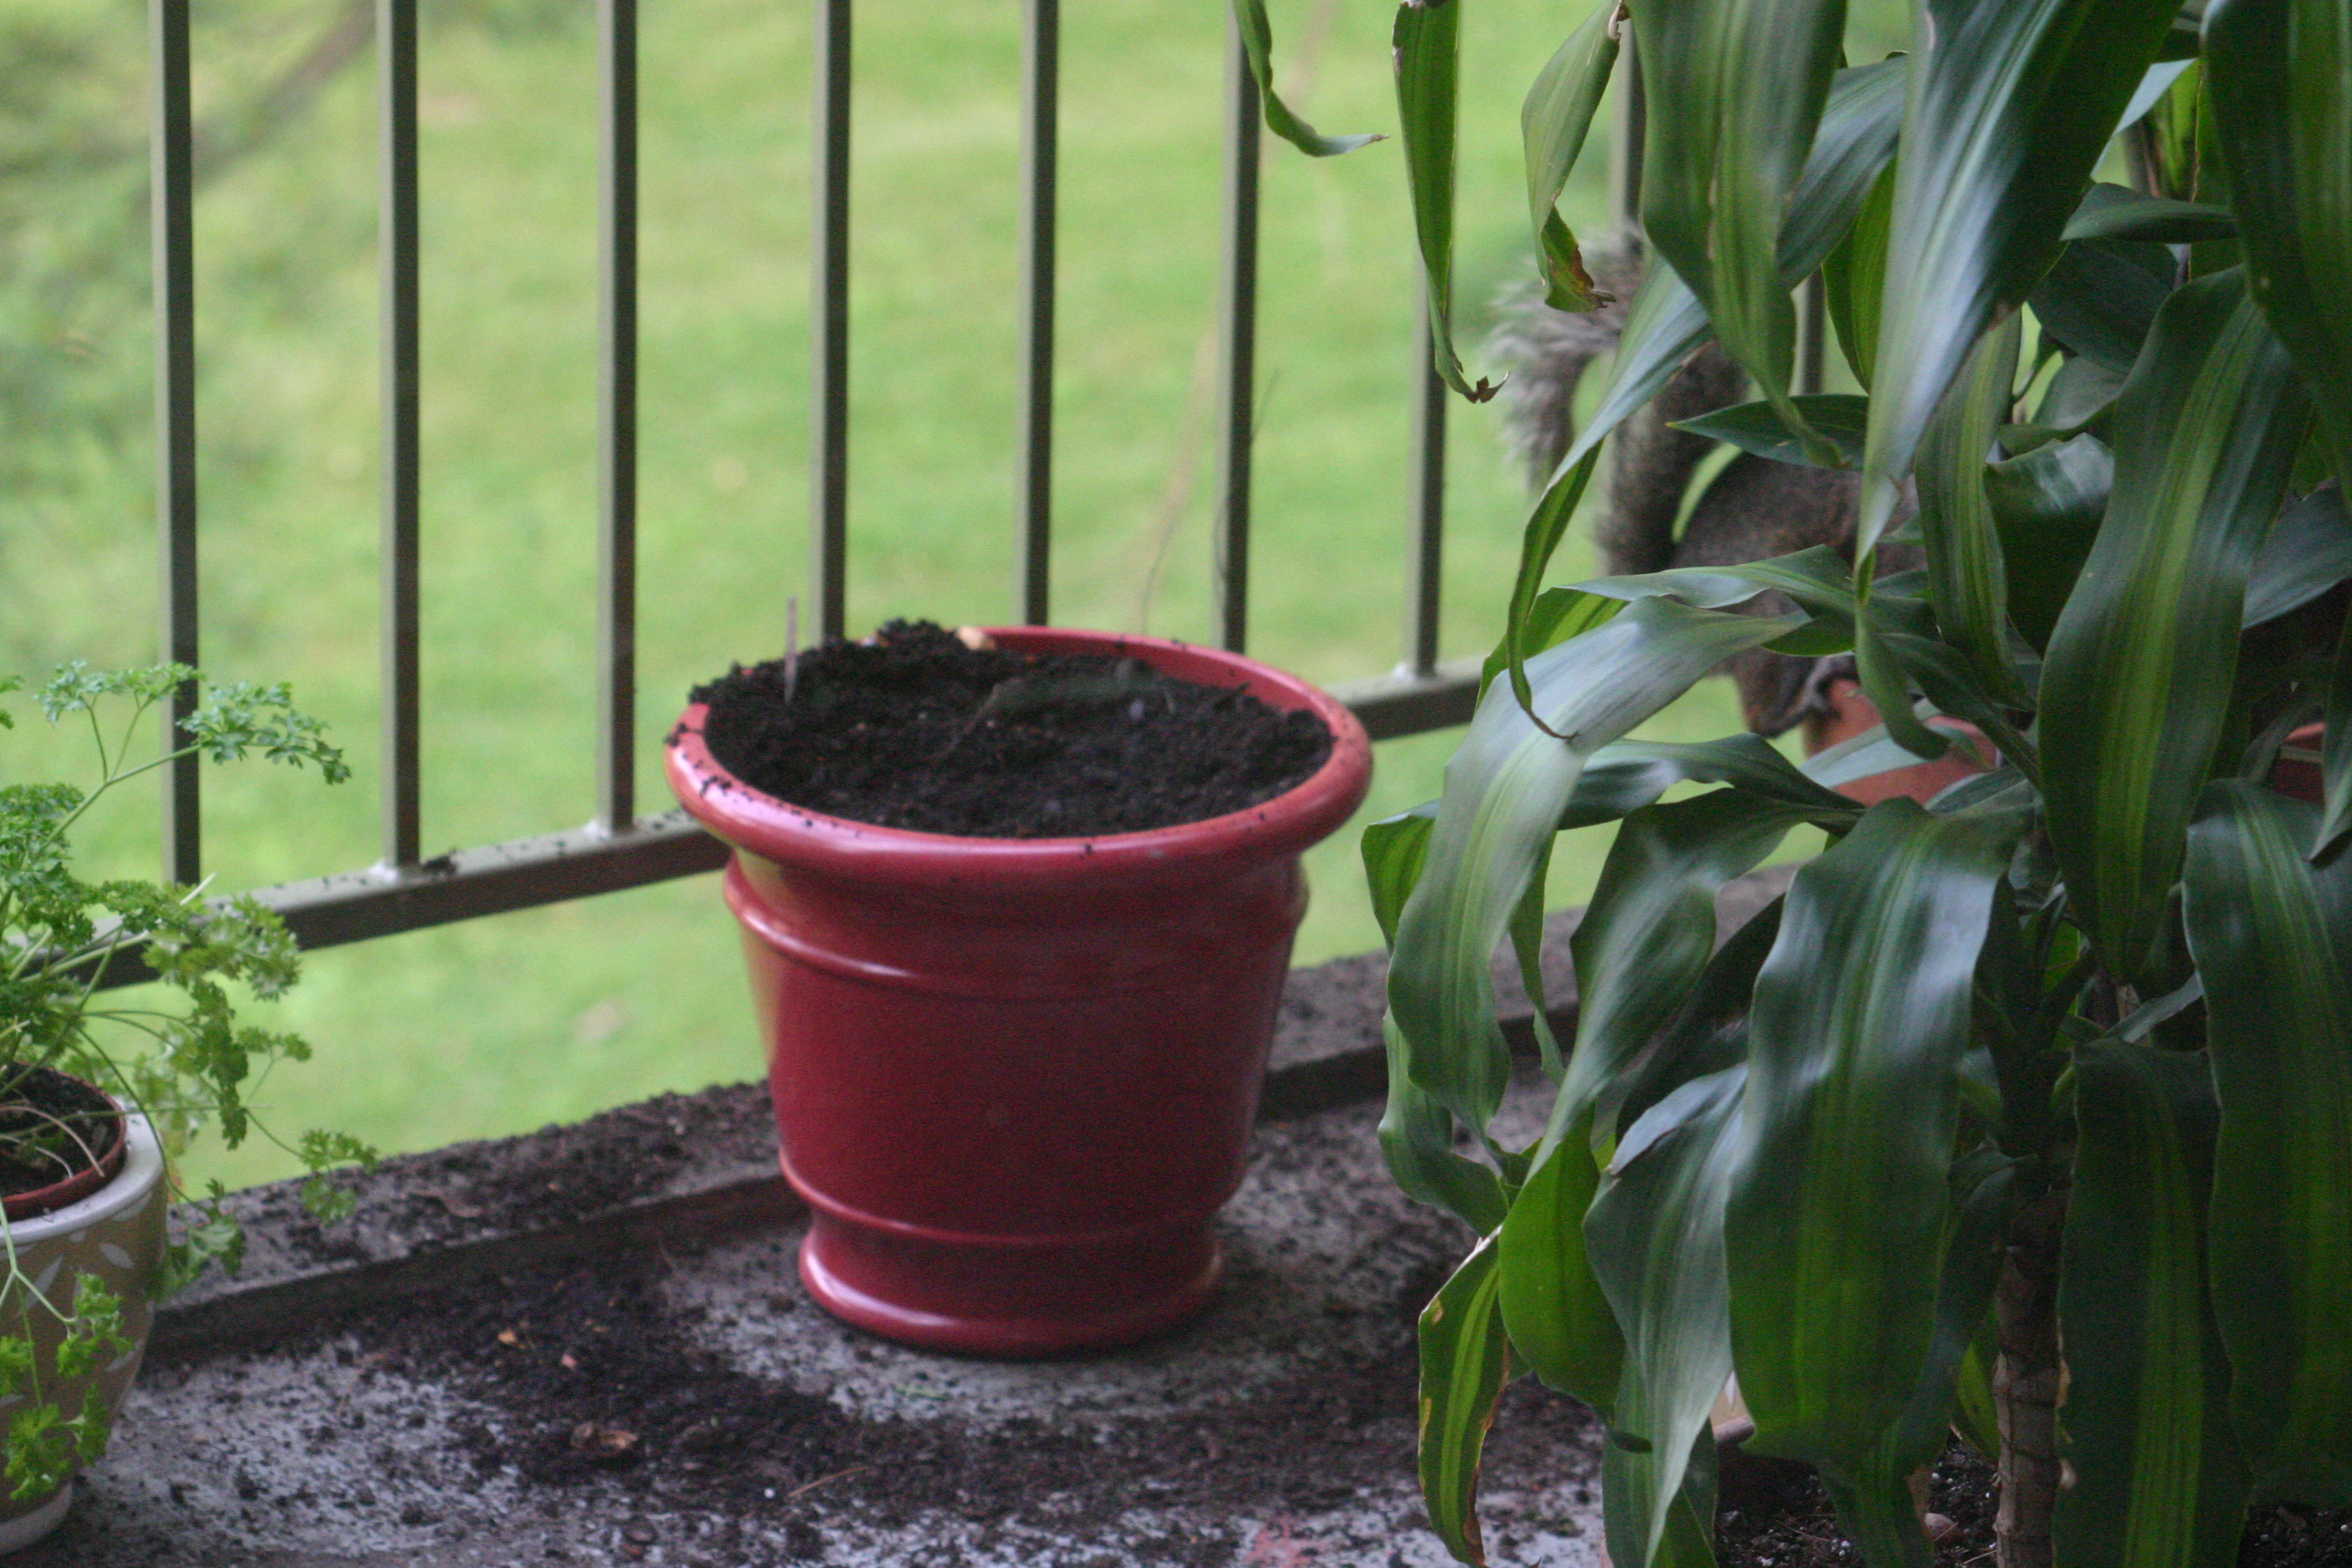 Balcony vegetable plants after a visit from squirrel.  How to deal with these unwanted guests?